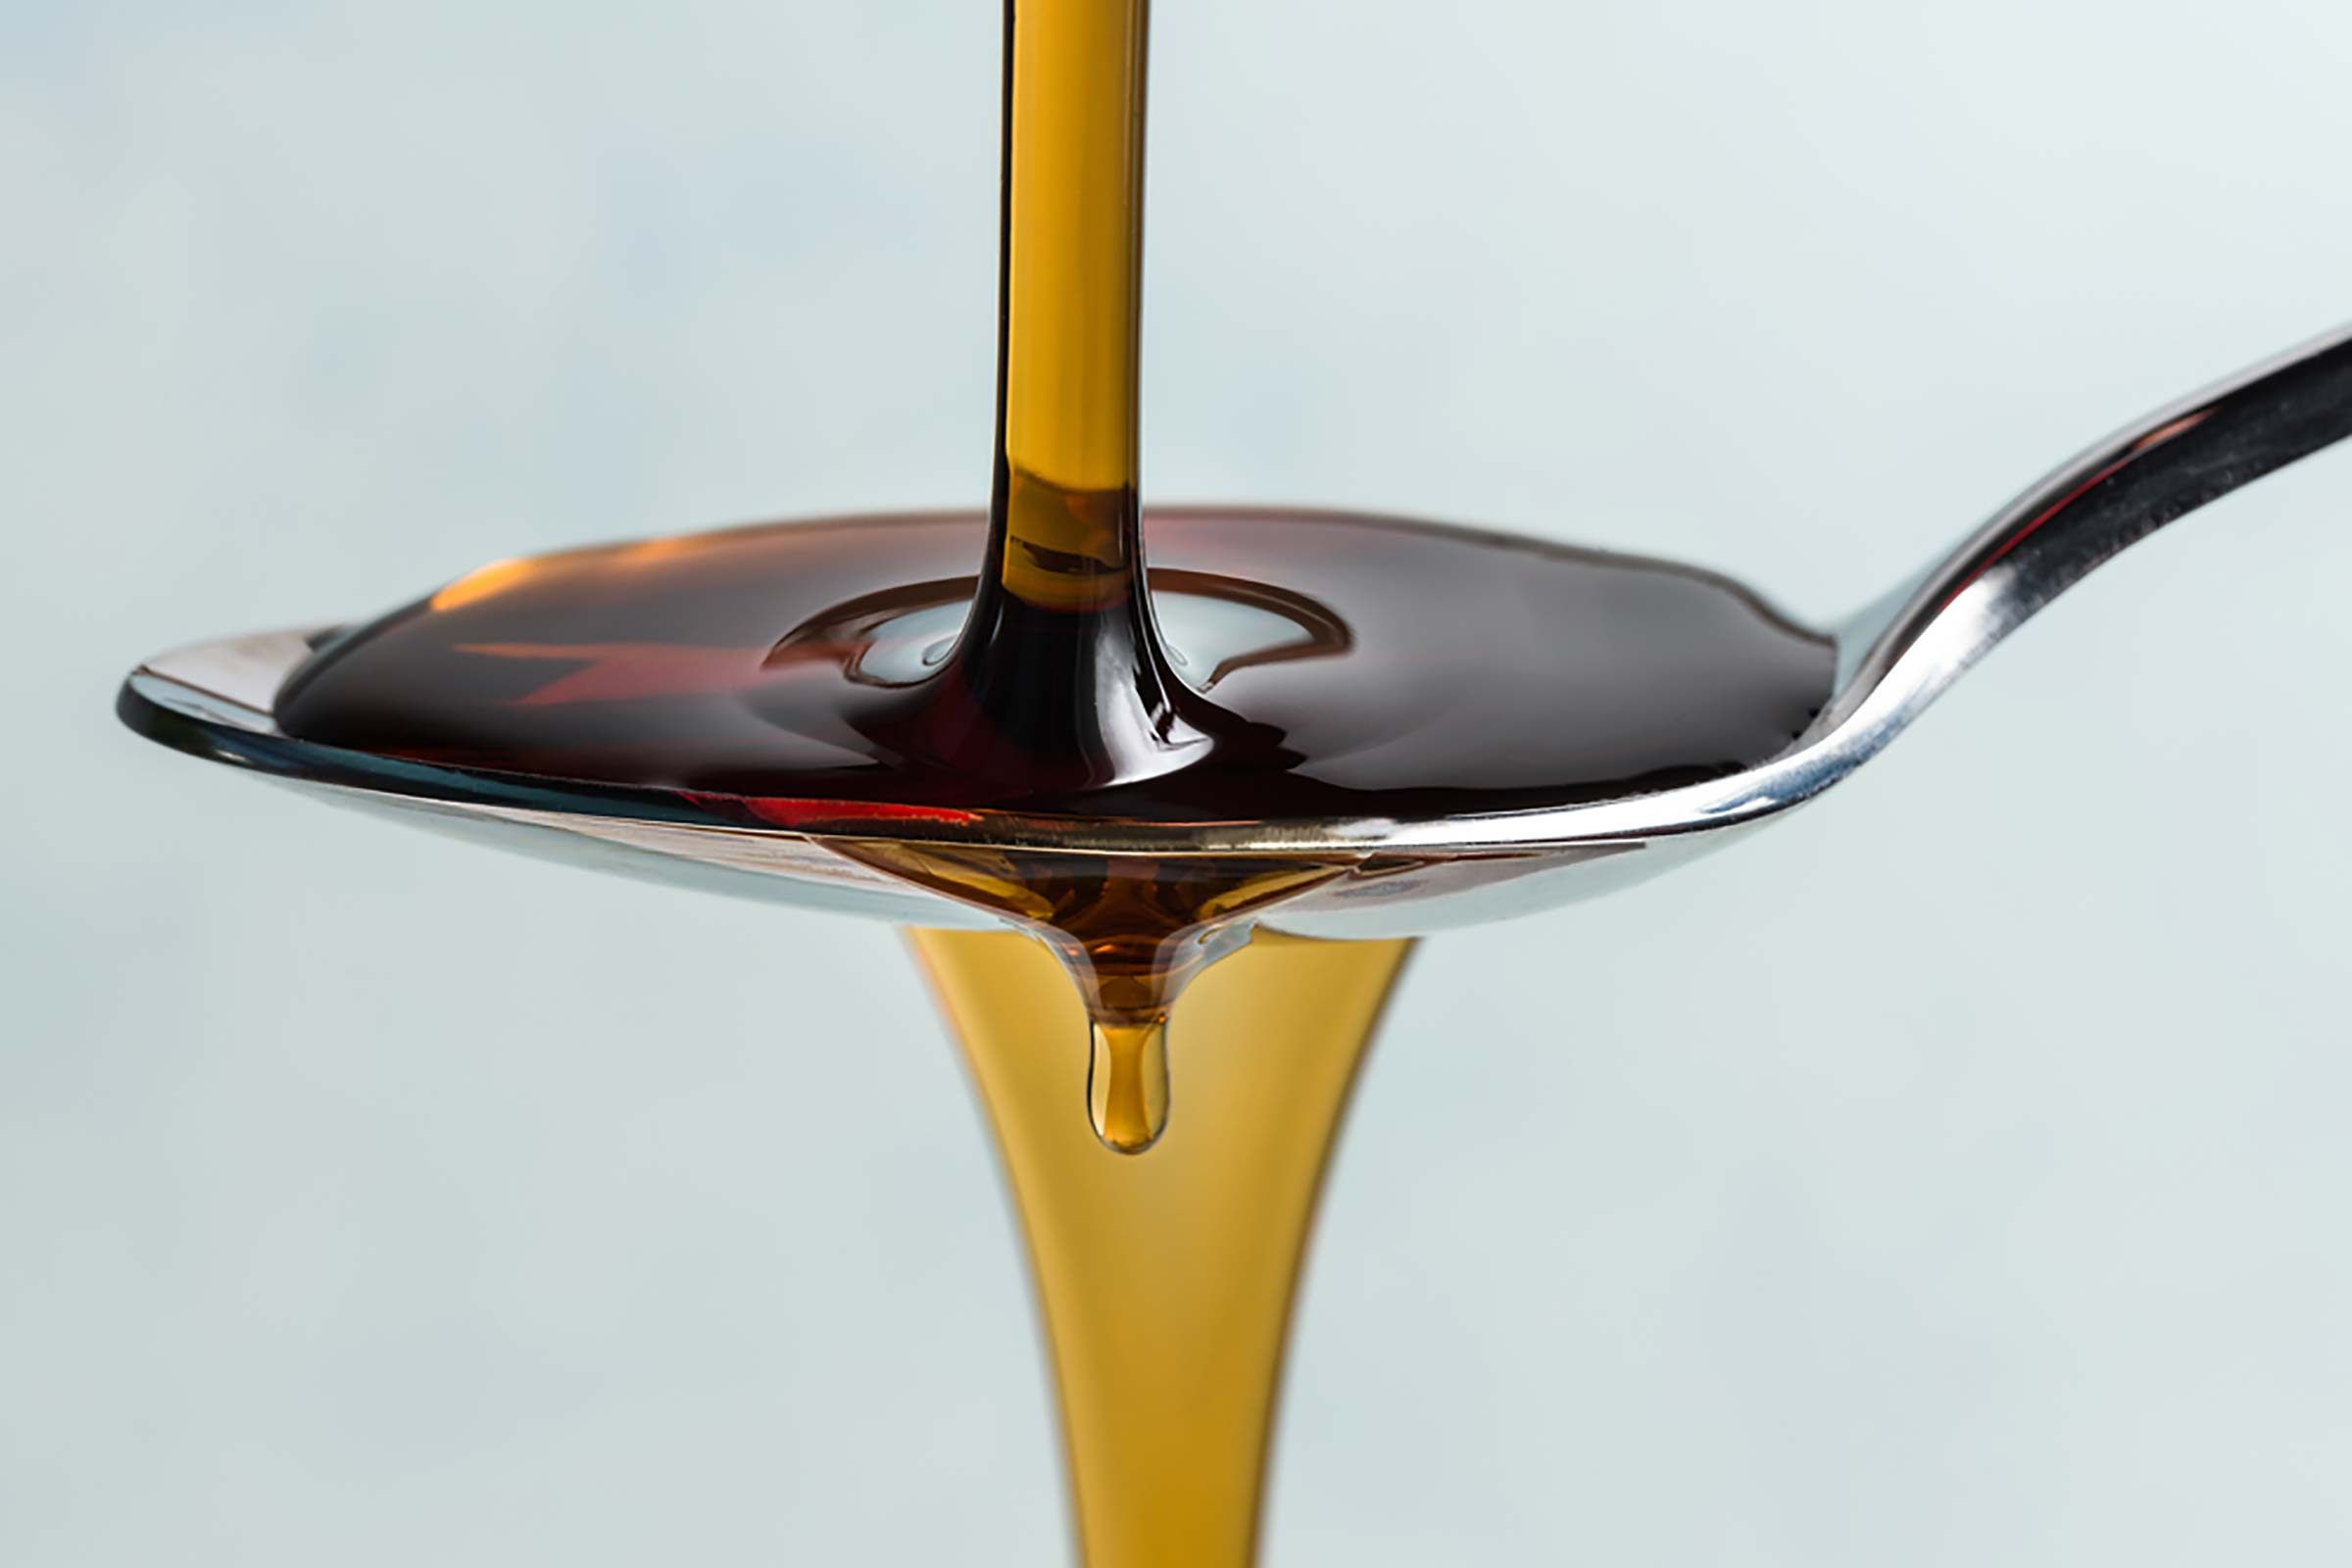 Molasses pouring into a tablespoon